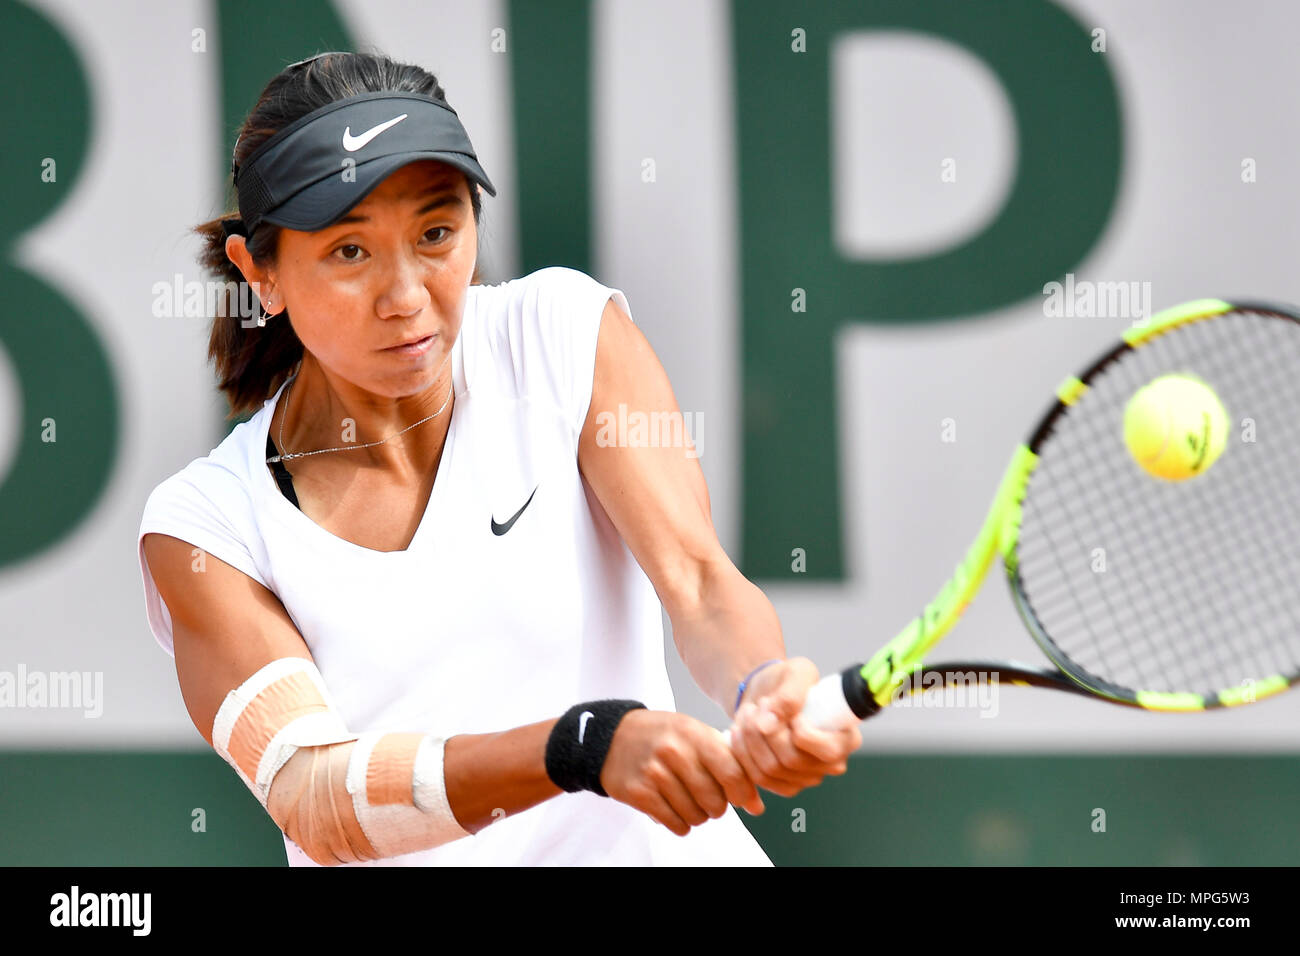 Paris, France. 23rd May, 2018. Lu Jiajing of China returns the ball to Margot Yerolymos of France during the women's singles Qualification 1st round match of French Open in Paris, France on May 23, 2018. Lu lost 0-2. Credit: Chen Yichen/Xinhua/Alamy Live News Stock Photo